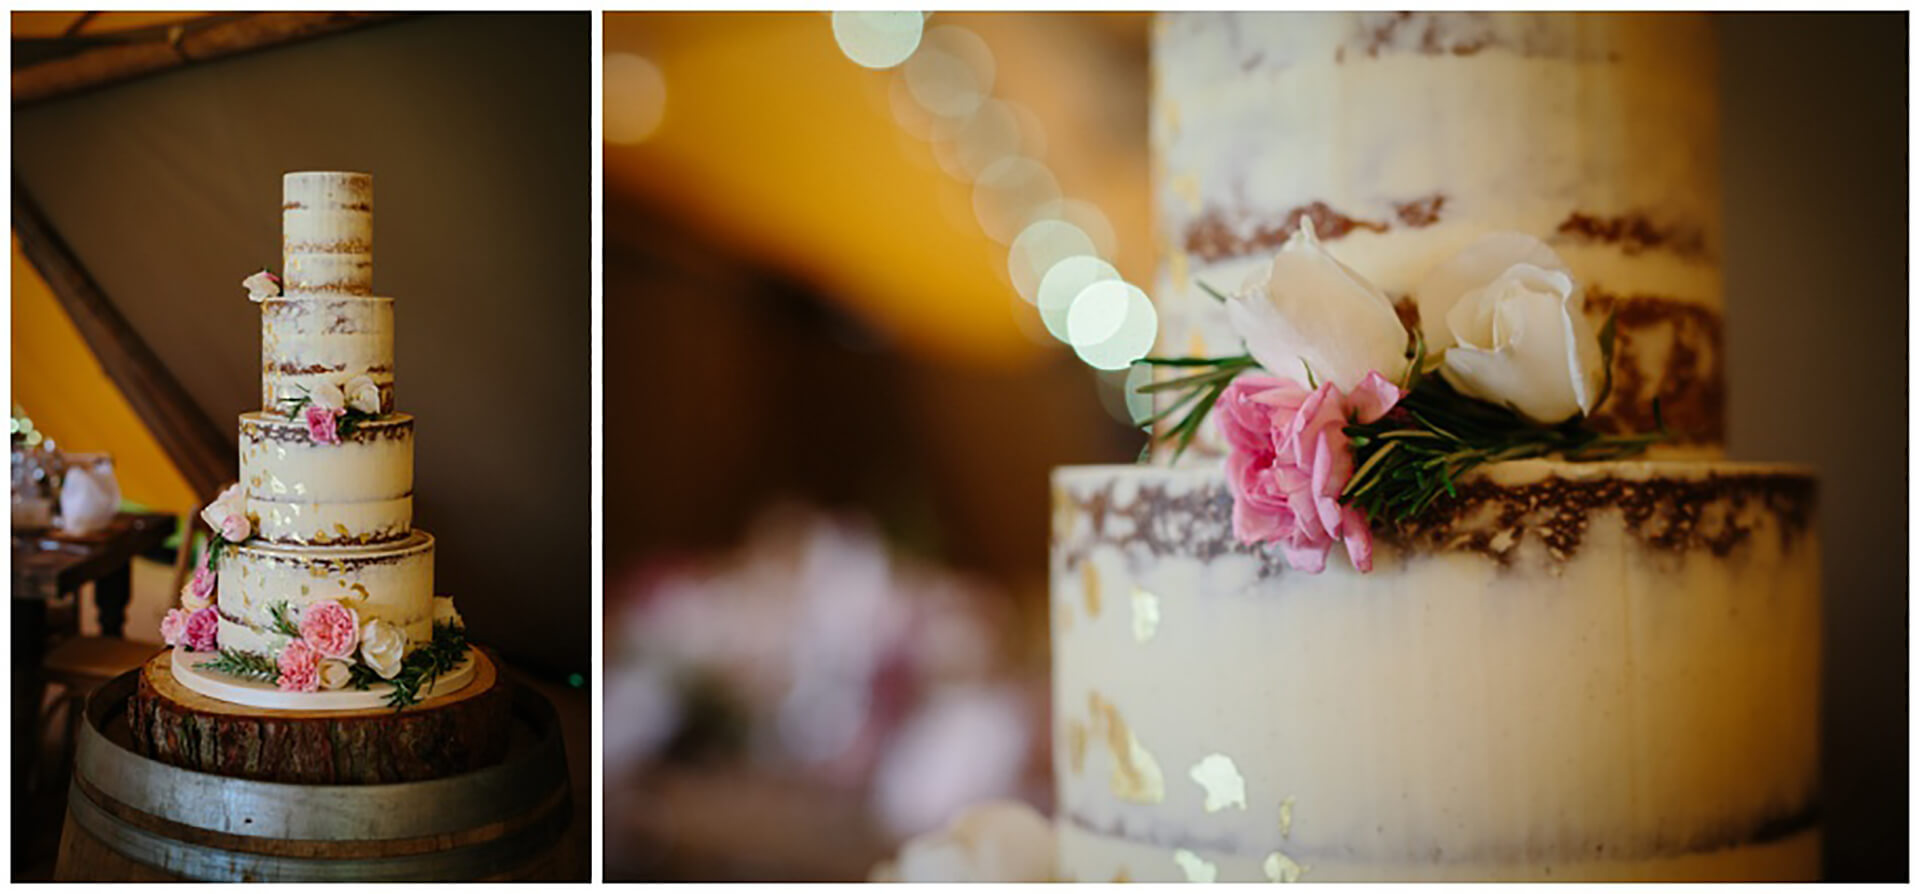 "Sophie and Roz's beautiful cake captured by <a href=""https://wynndaviesphotography.com/"" target=""_blank"">Wynn Davies</a>."